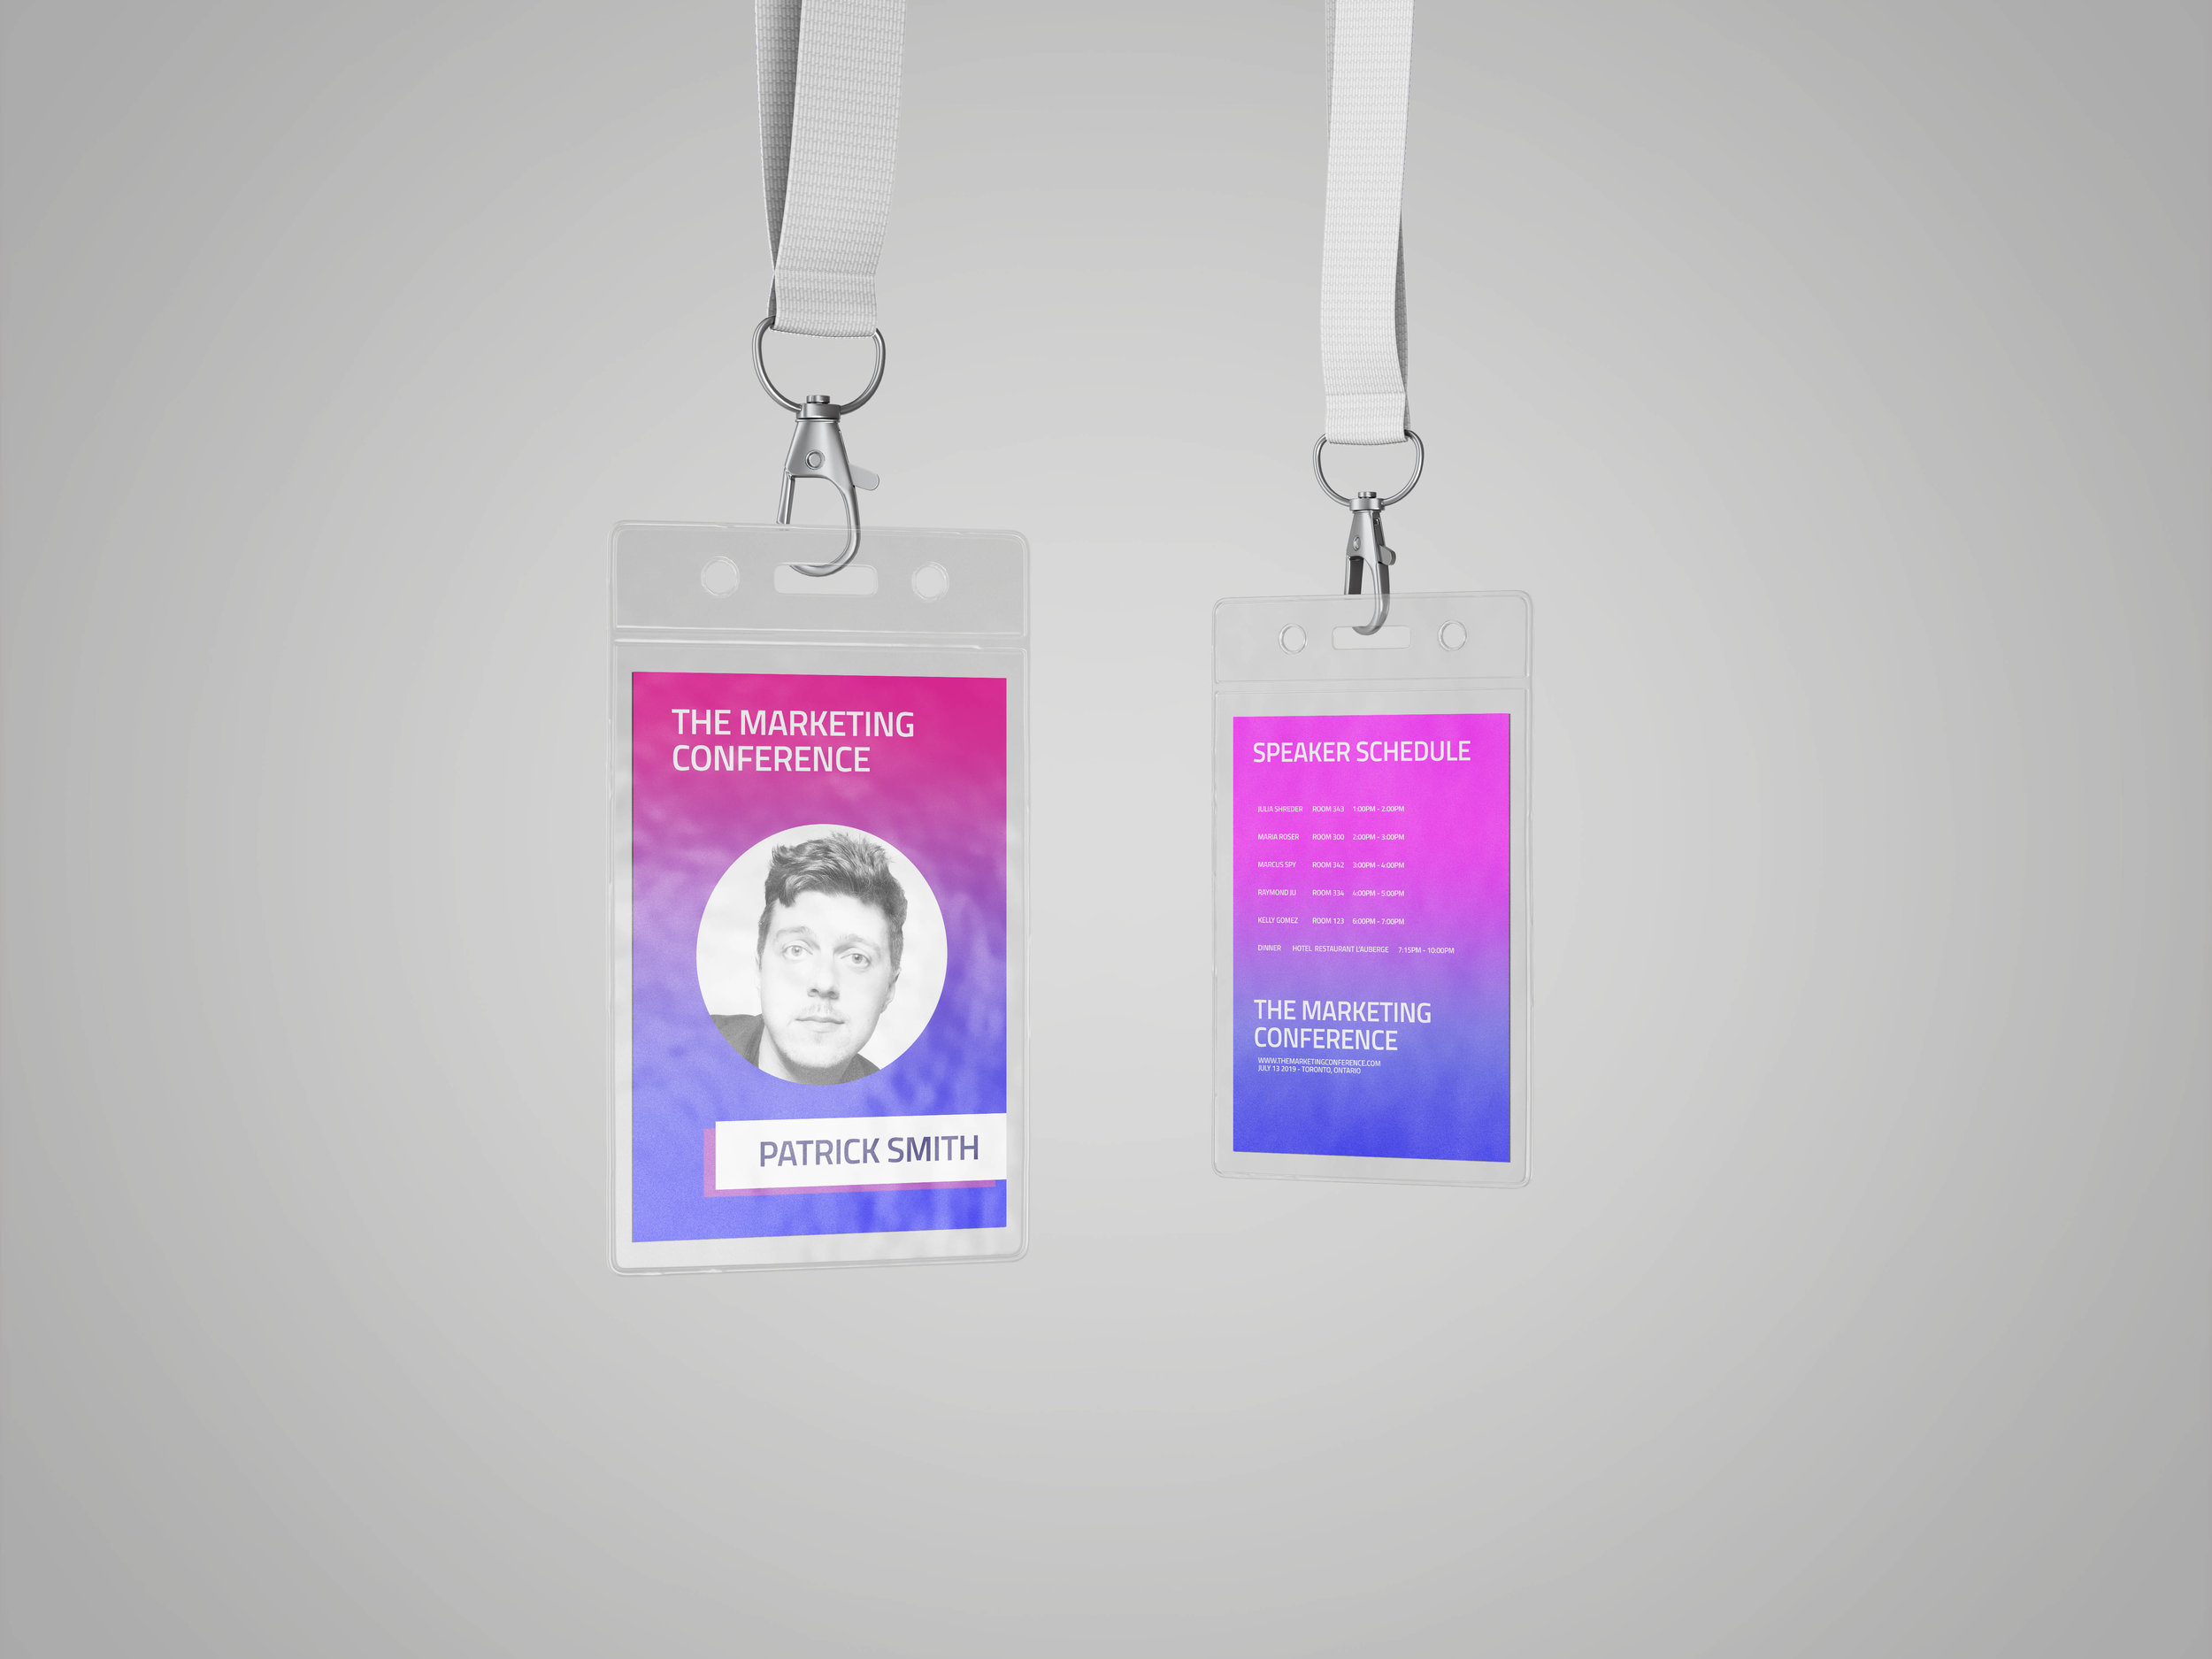 Add a schedule to the back of your ID badge so people know where to go at all times.